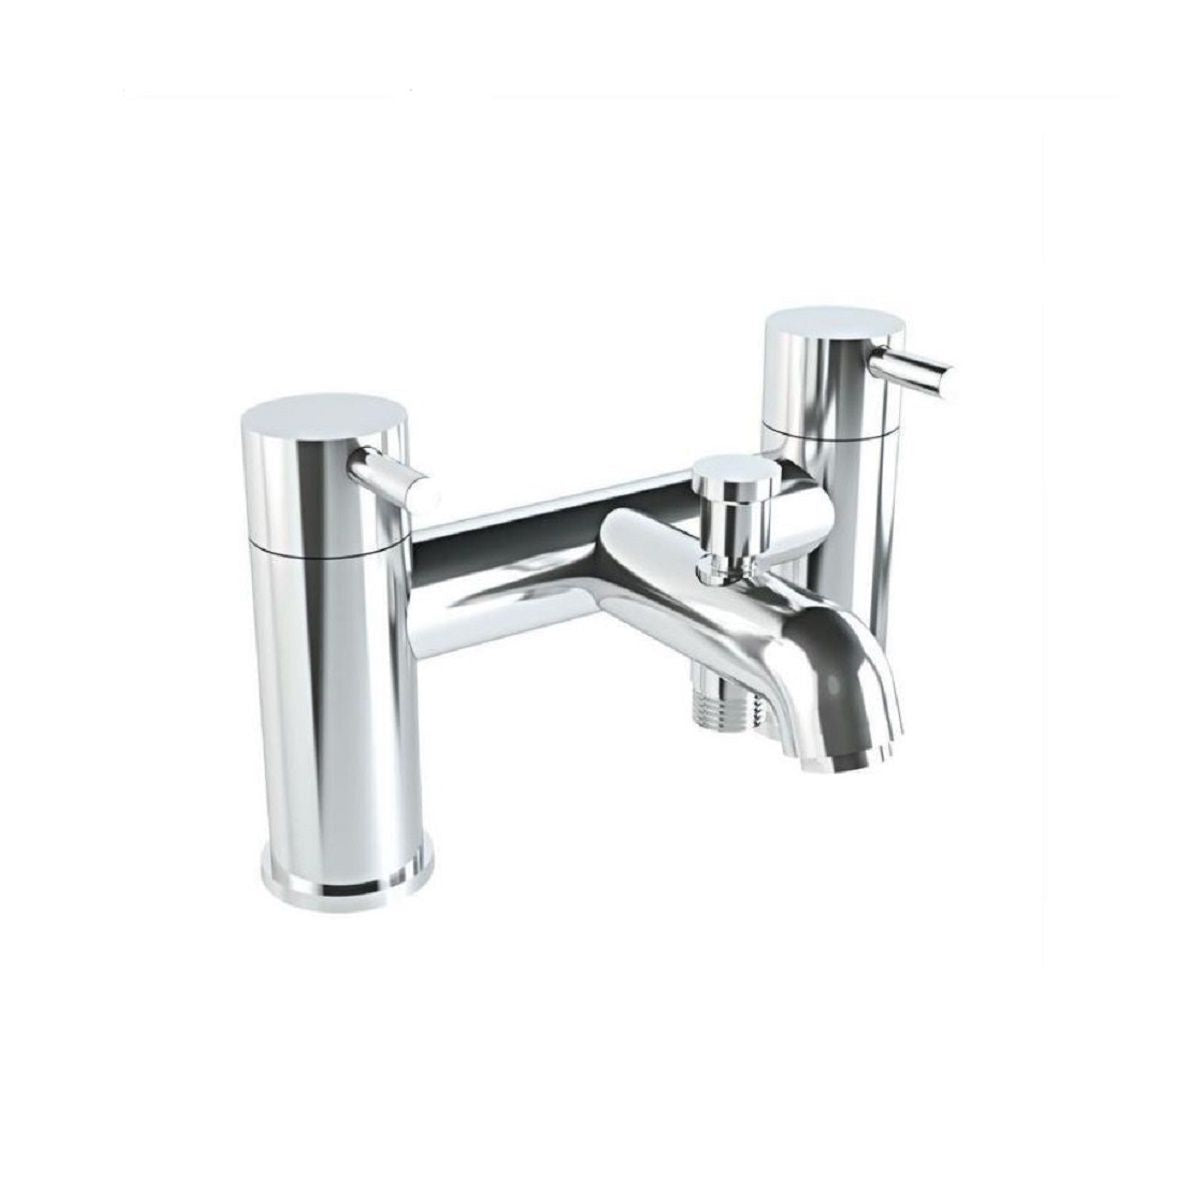 Minimax S 2 Hole Bath Filler - Blue Sky Bathrooms Ltd